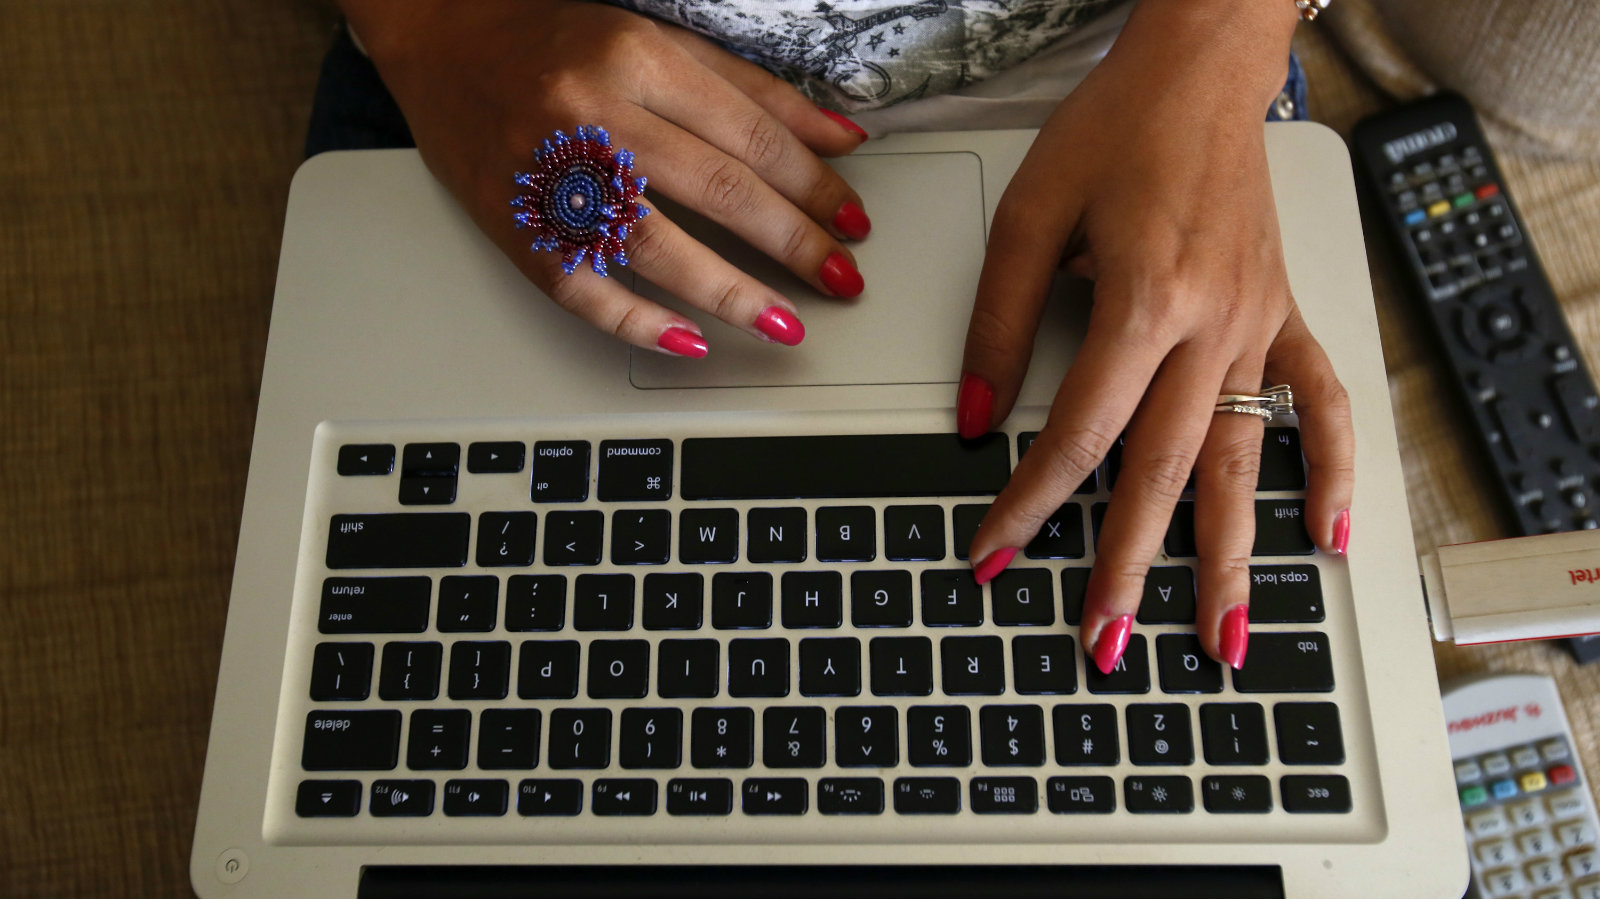 "The hands of Malini Agarwal, blogger-in-chief of missmalini.com, are pictured as she blogs from her living room in Mumbai, January 22, 2013. Agarwal, 35, exemplifies what aspirational India is all about - She's bubbly, energetic, and describes herself as ""India's blogging princess"" and a ""social media Jedi"". She's been called ""without a doubt, India's most famous blogger"". Her blog, missmalini.com, gets over 250,000 unique visitors a month. It provides a steady diet of Bollywood gossip, fashion, food and entertainment to a legion of followers."